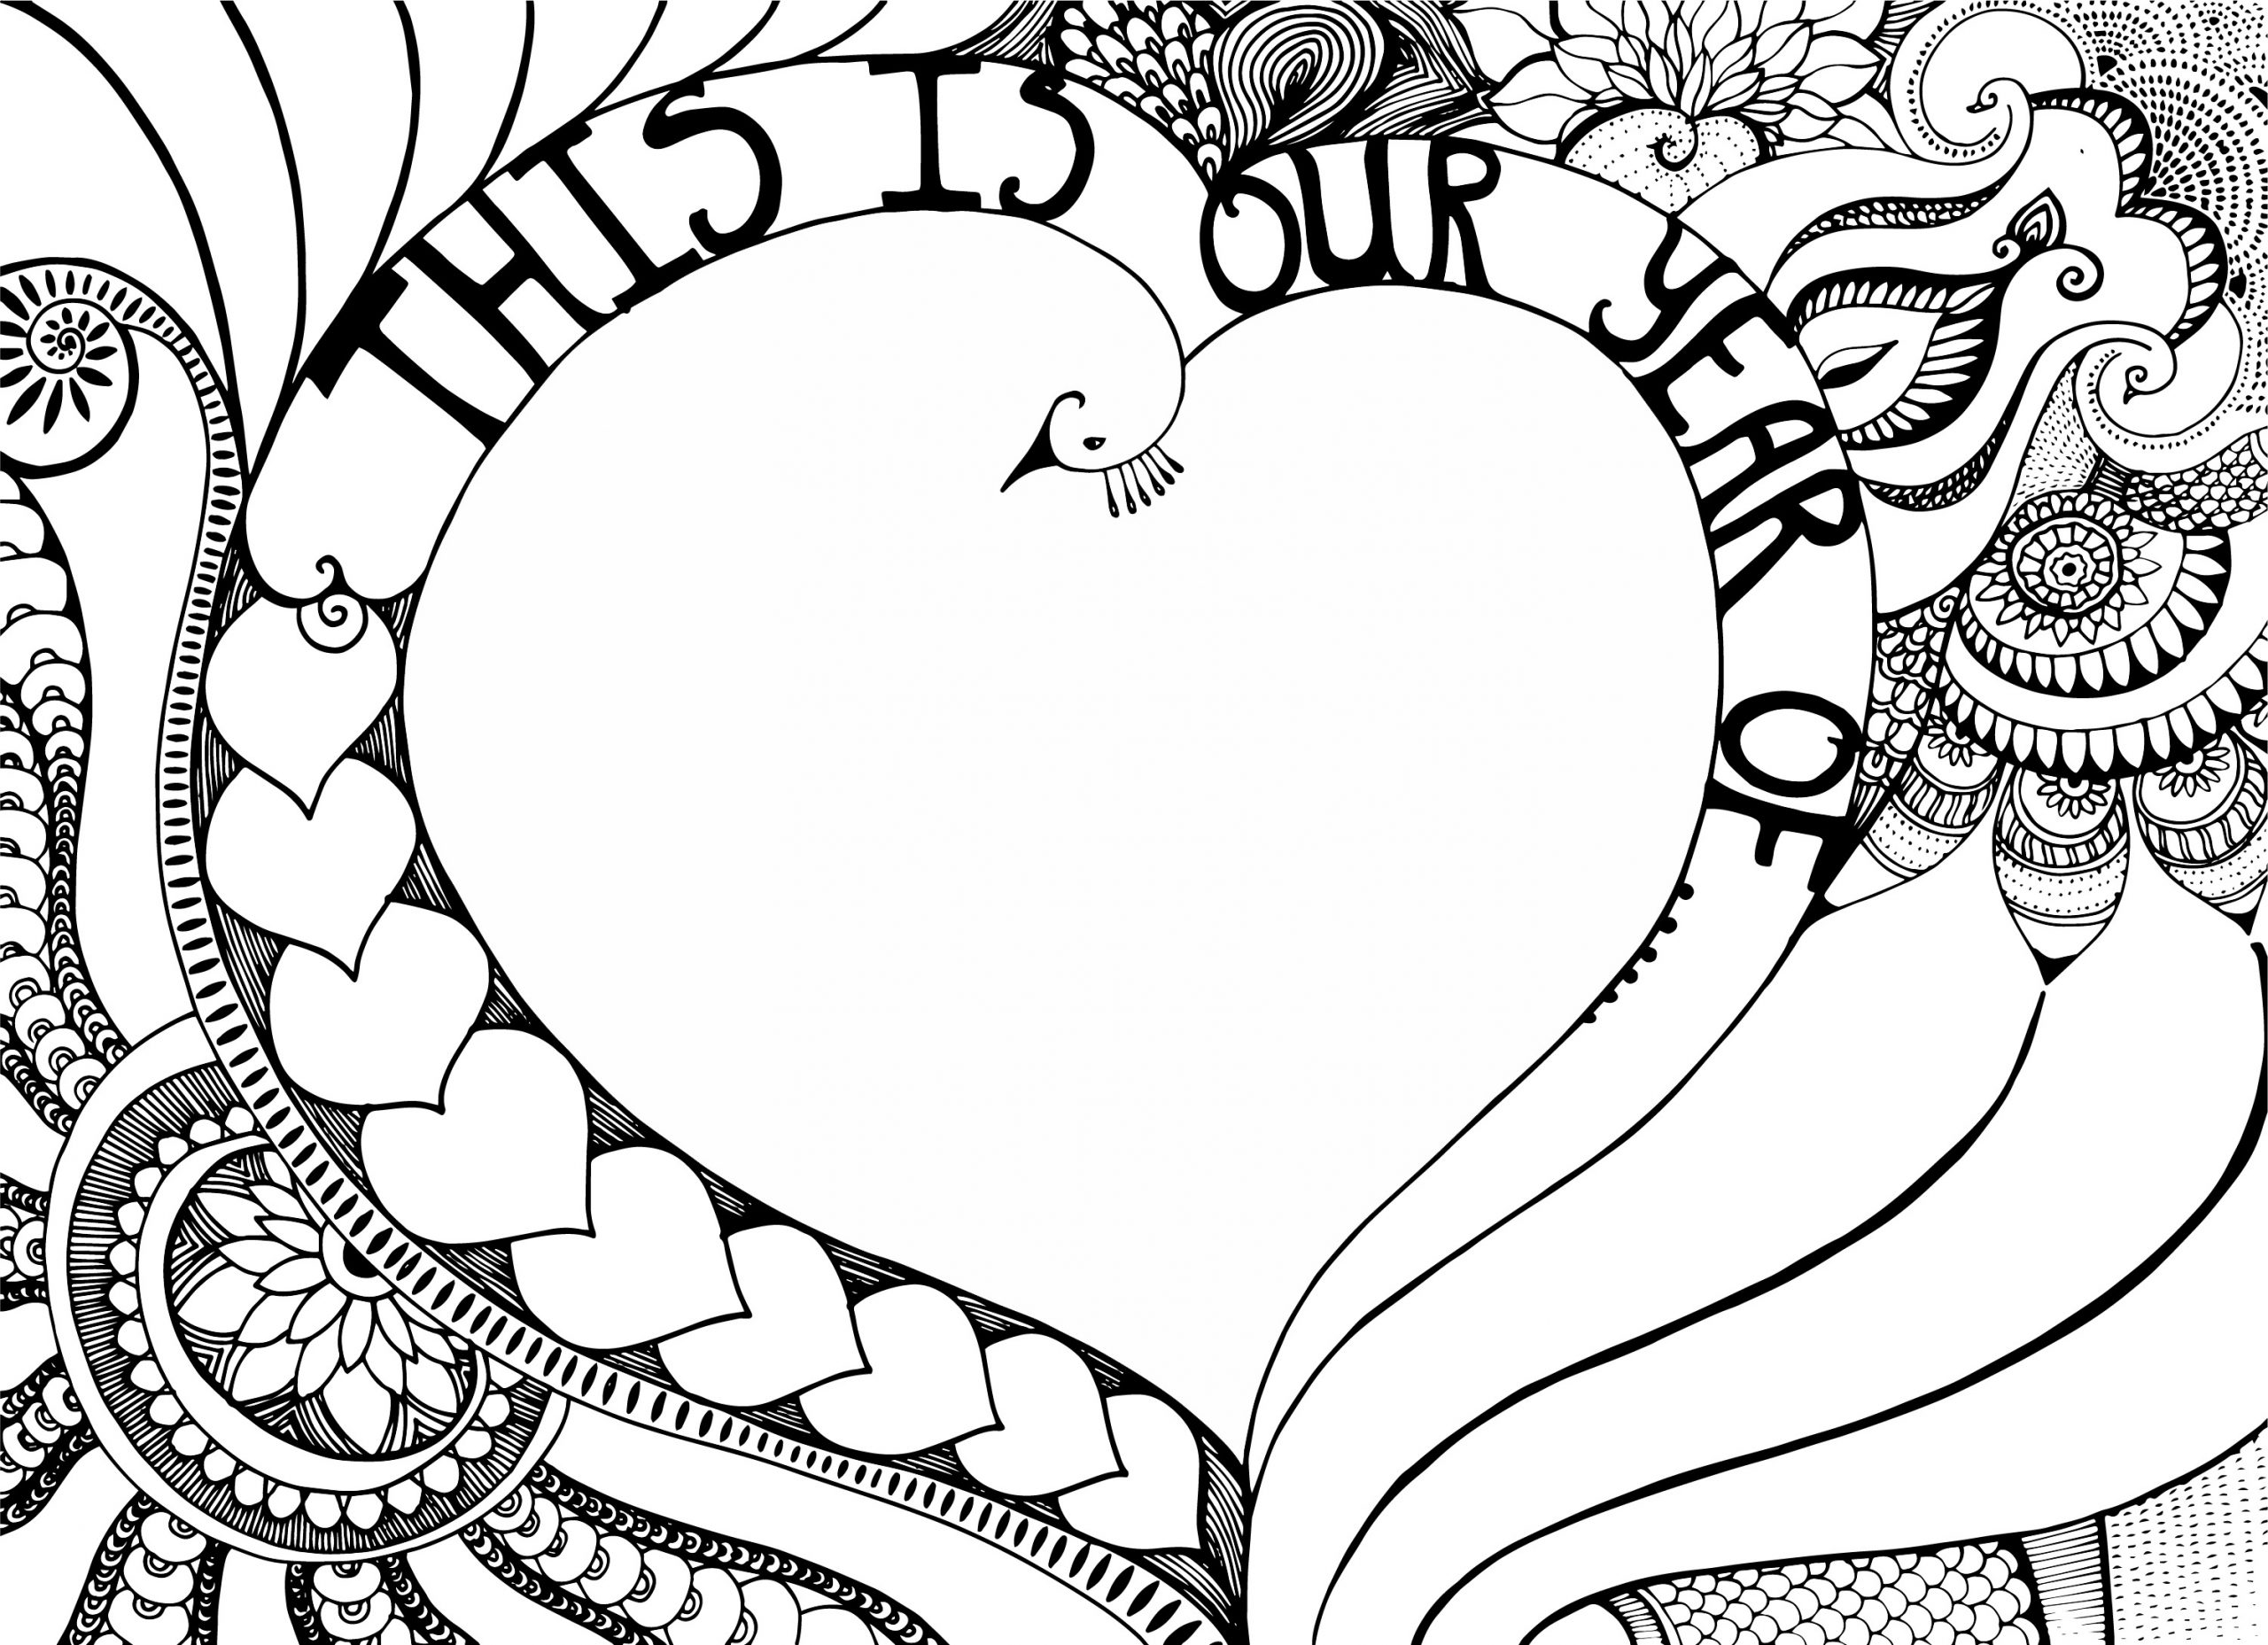 this is our year - heart coloring page